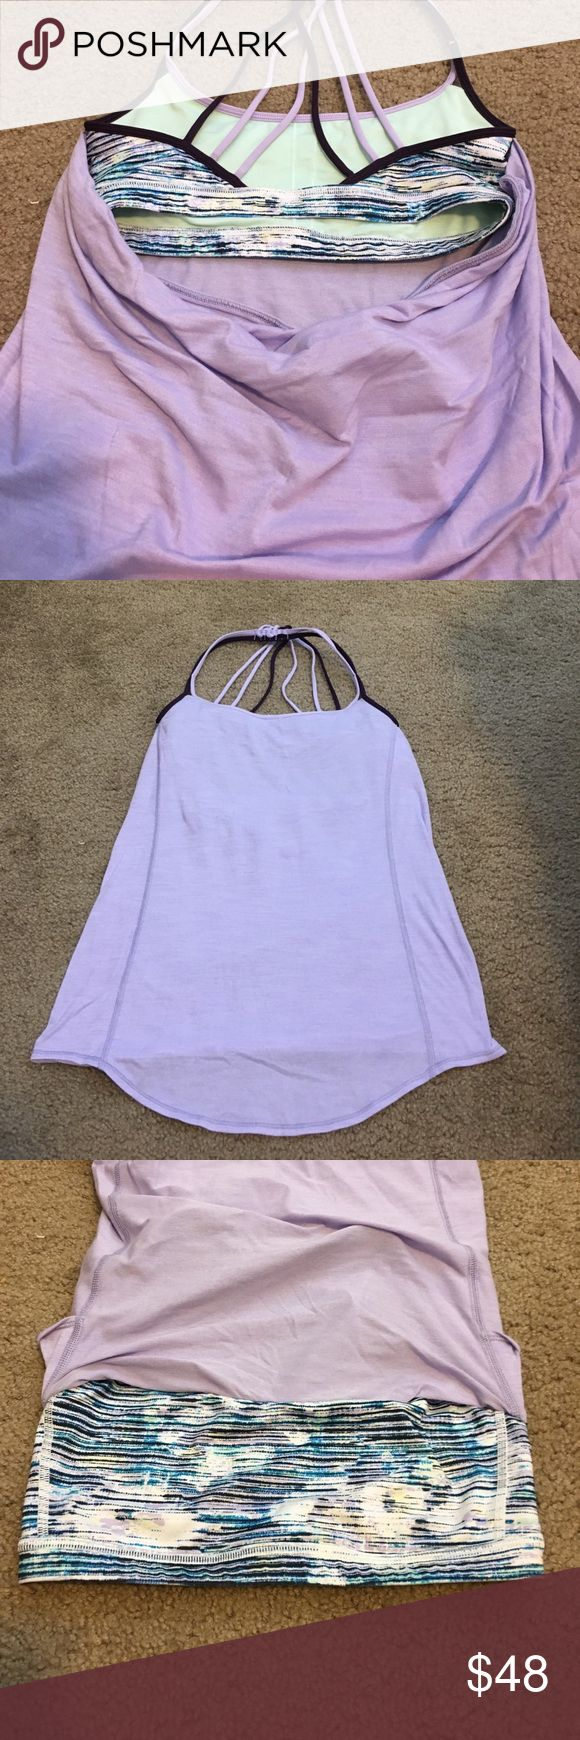 Lululemon Purple Strappy Slouchy Back Top RARE Super cute! Good condition! Only worn a couple times! Lulu symbol is on lower left on the back. Super comfortable and flattering! lululemon athletica Tops